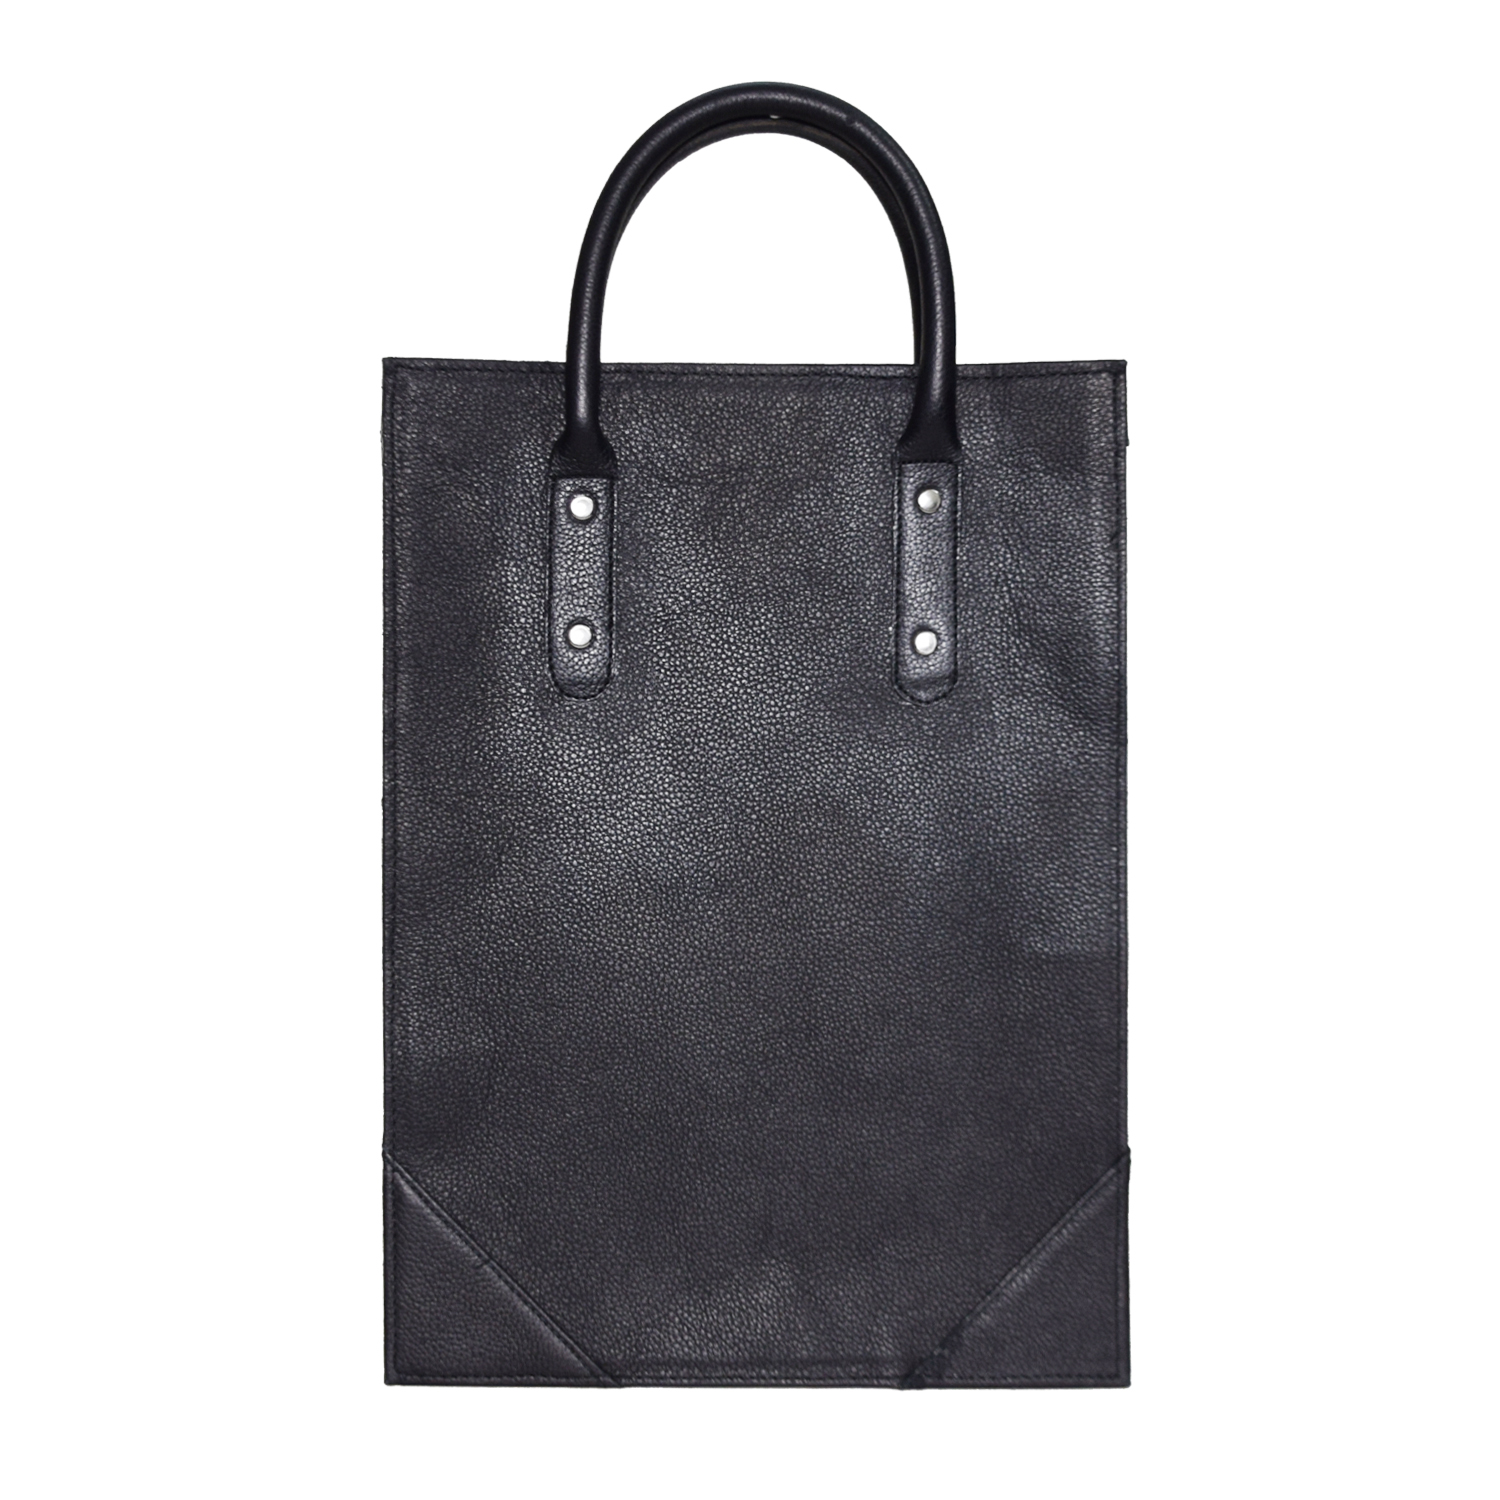 BLACK LEATHER TOTE BAG WITH SHOULDER BELT IN BUFFALO LEATHER